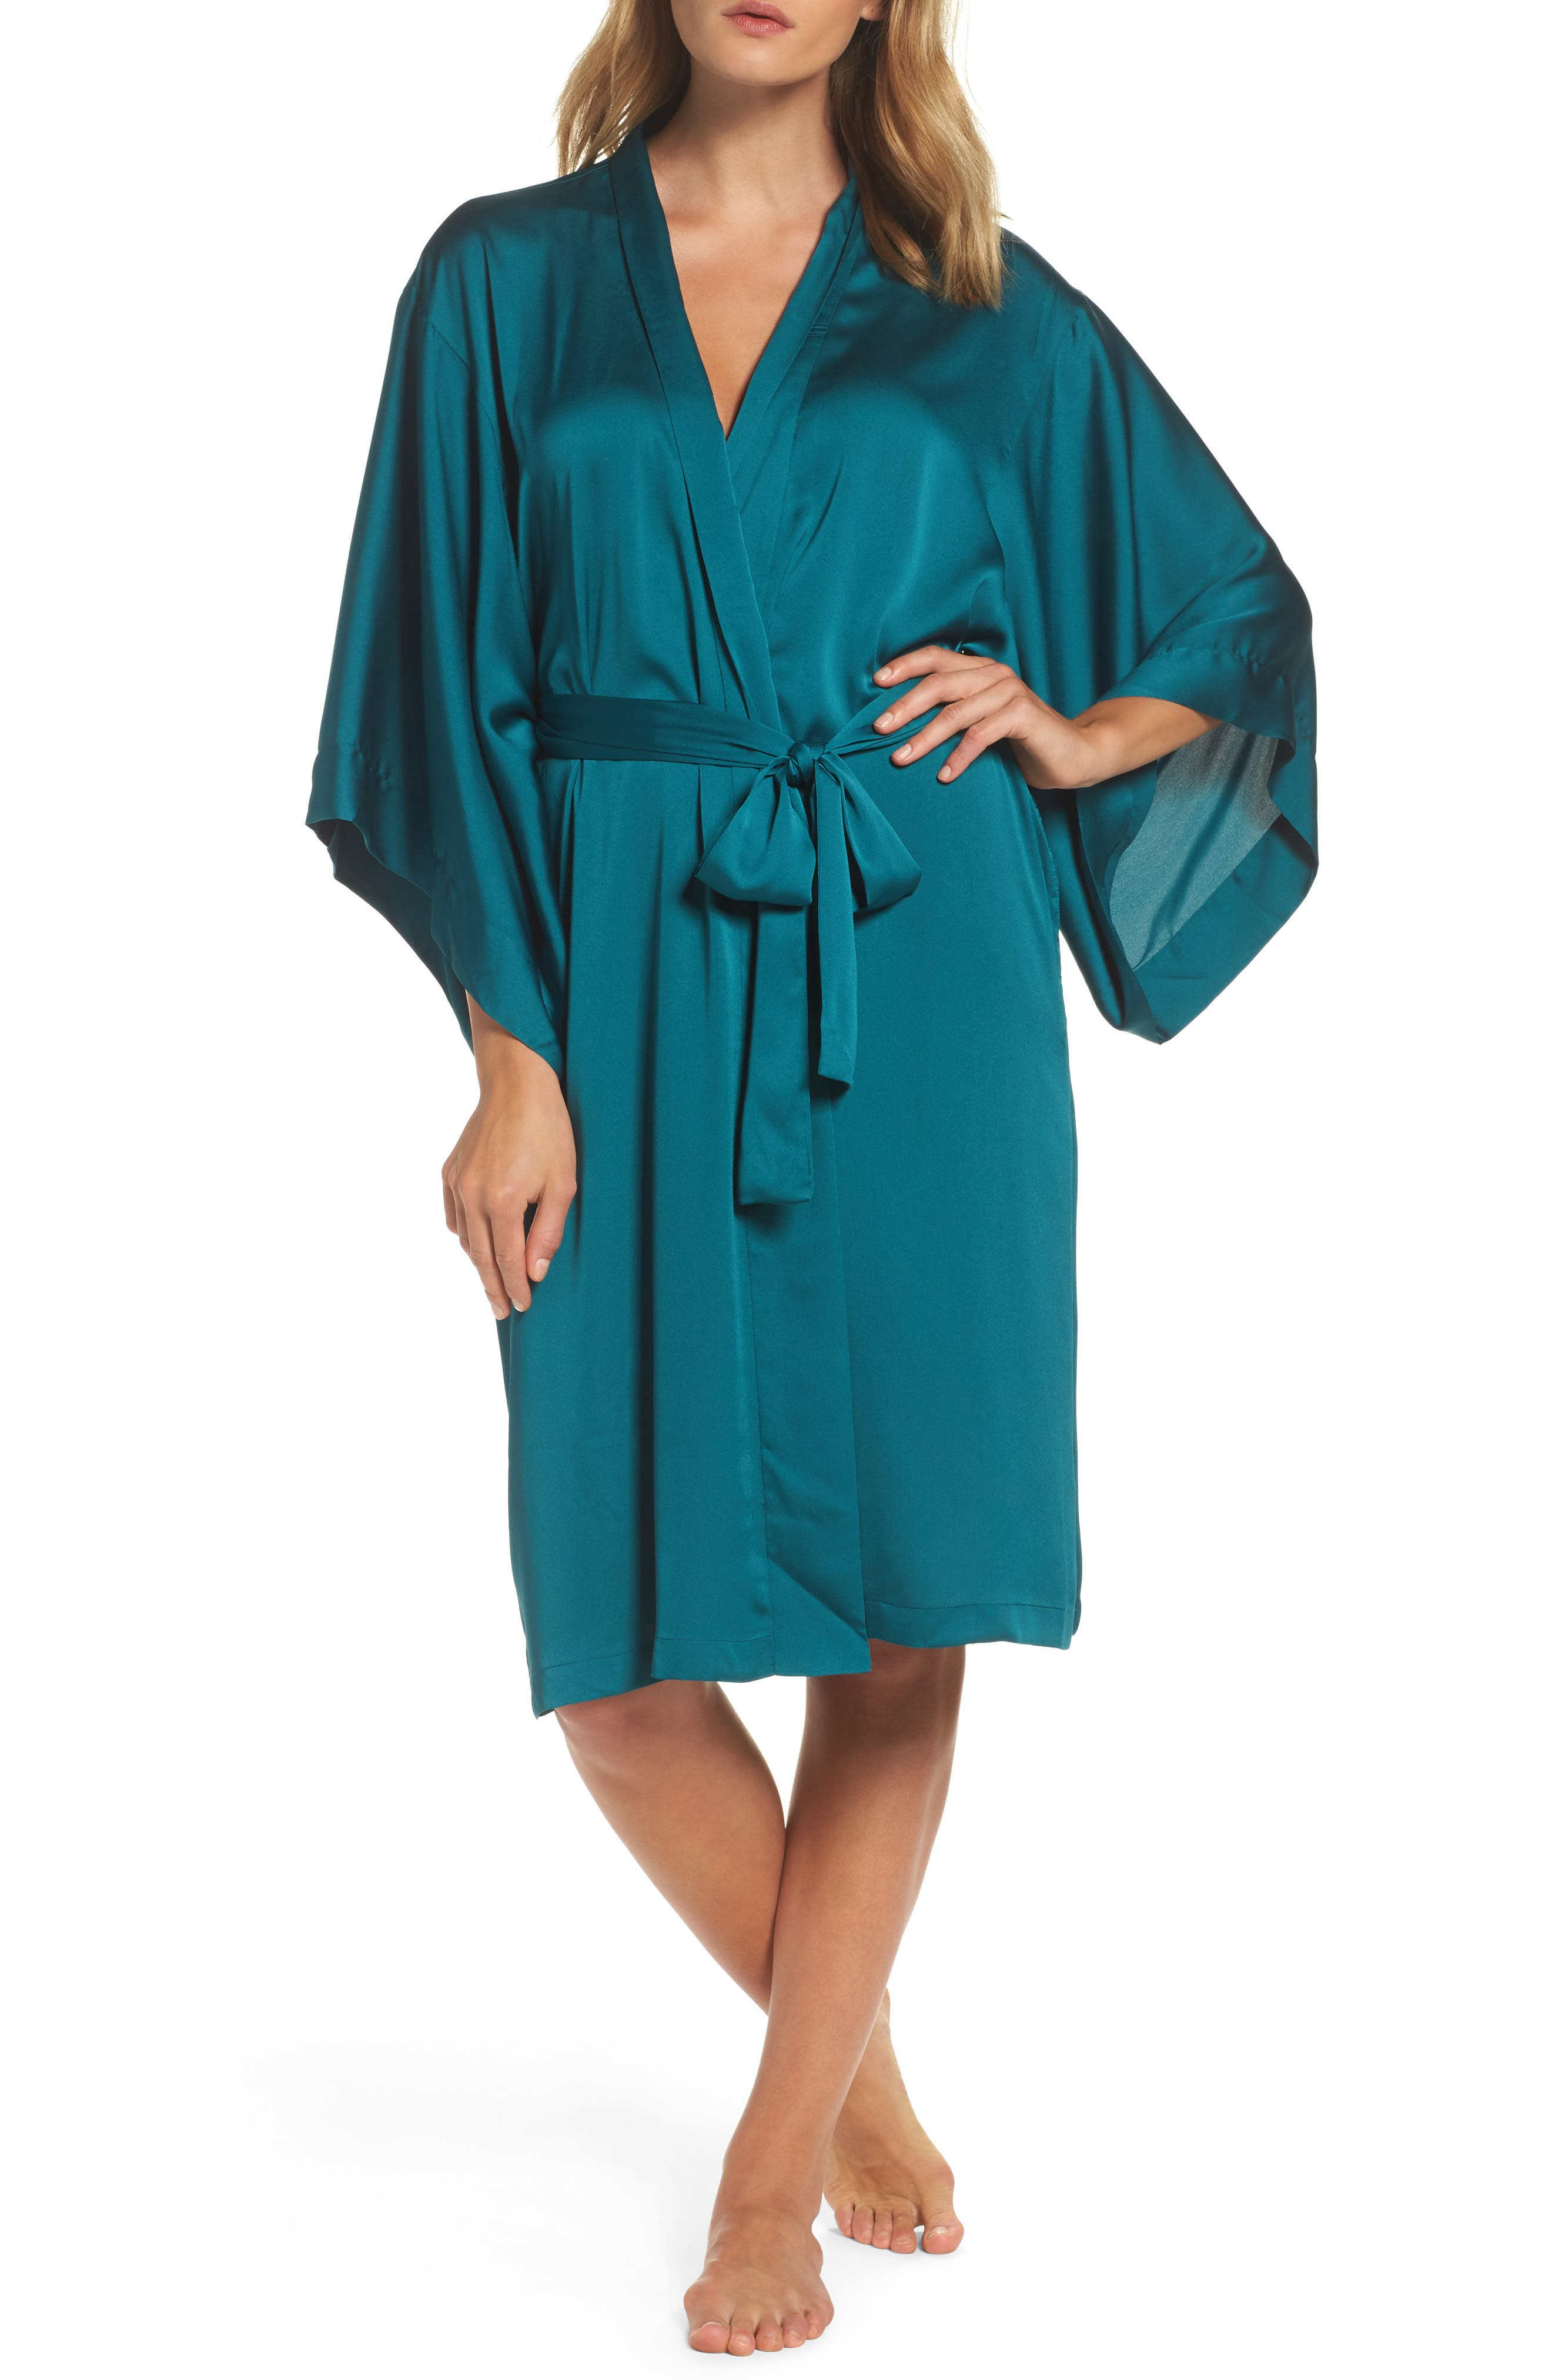 Feathers Satin Wrap,                         Main,                         color, Blue Green